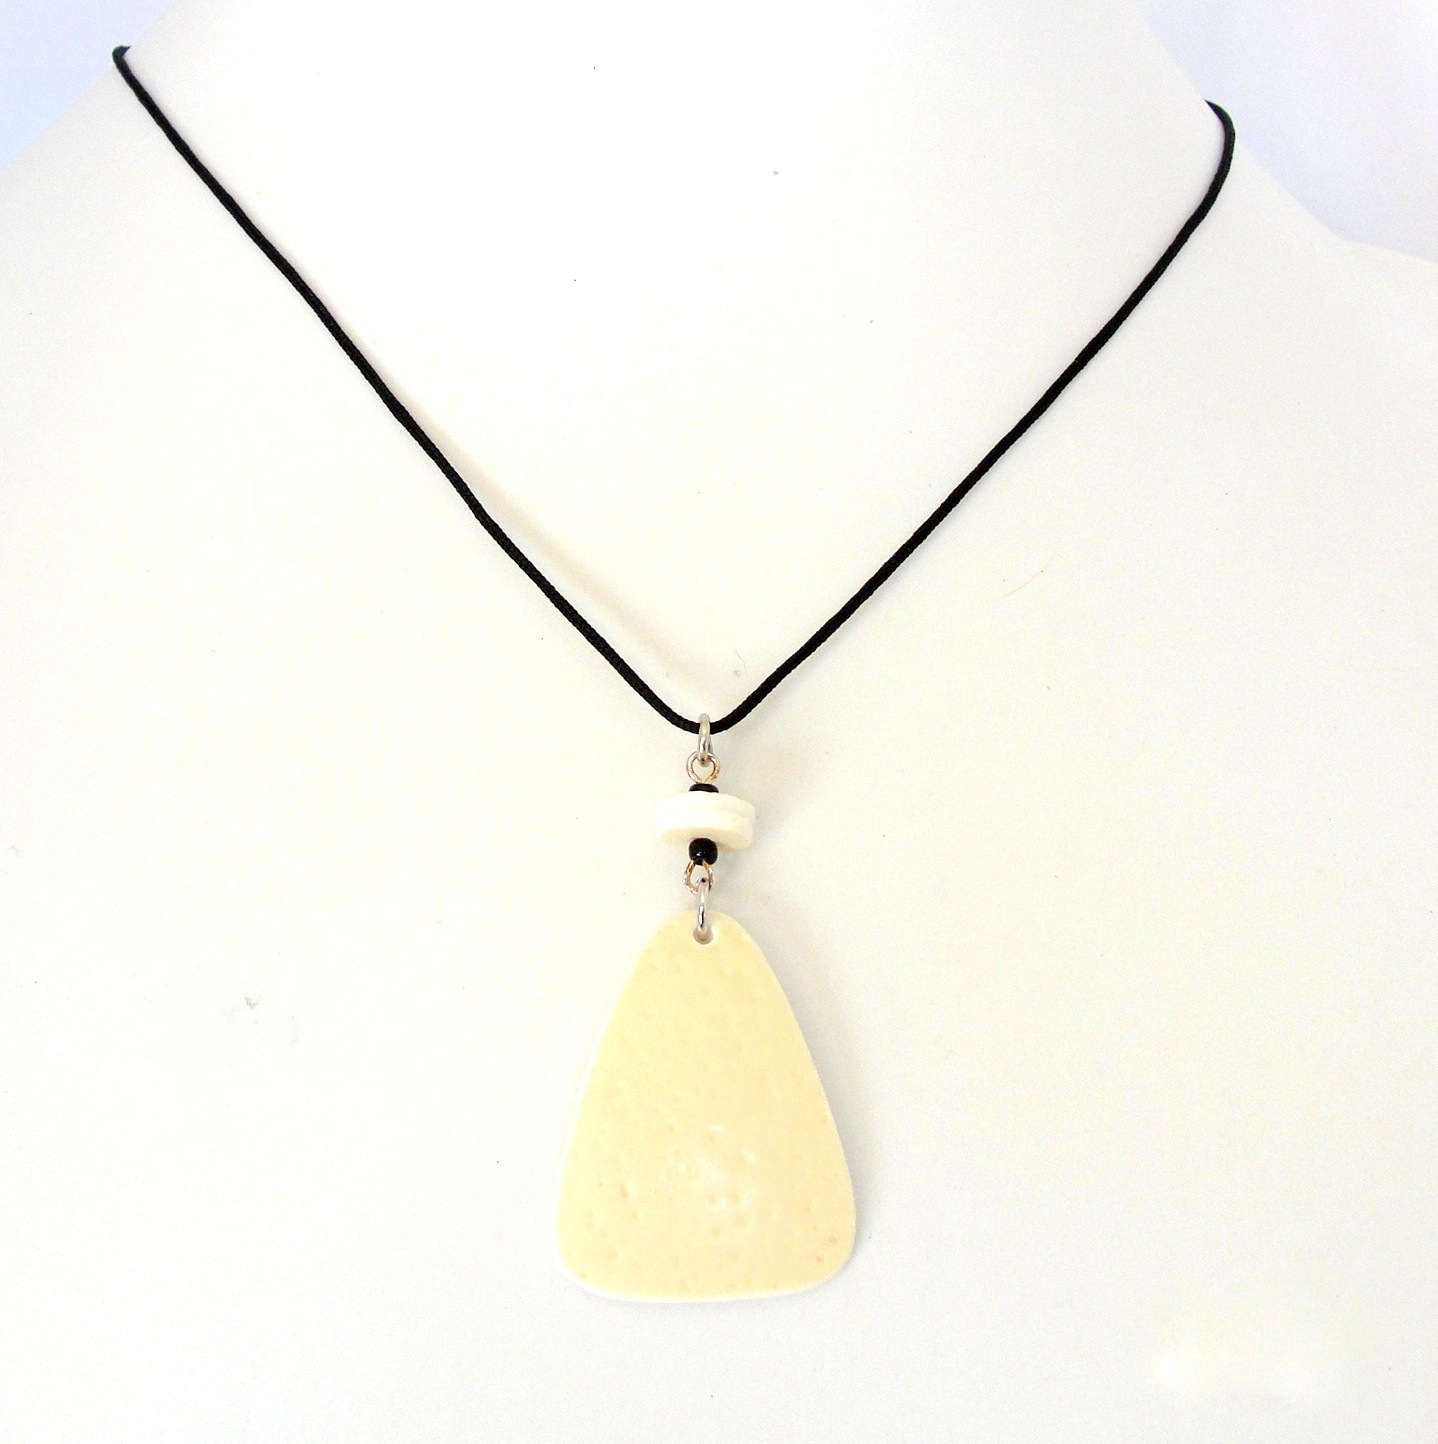 Oval ostrich shell pendant on cord necklace